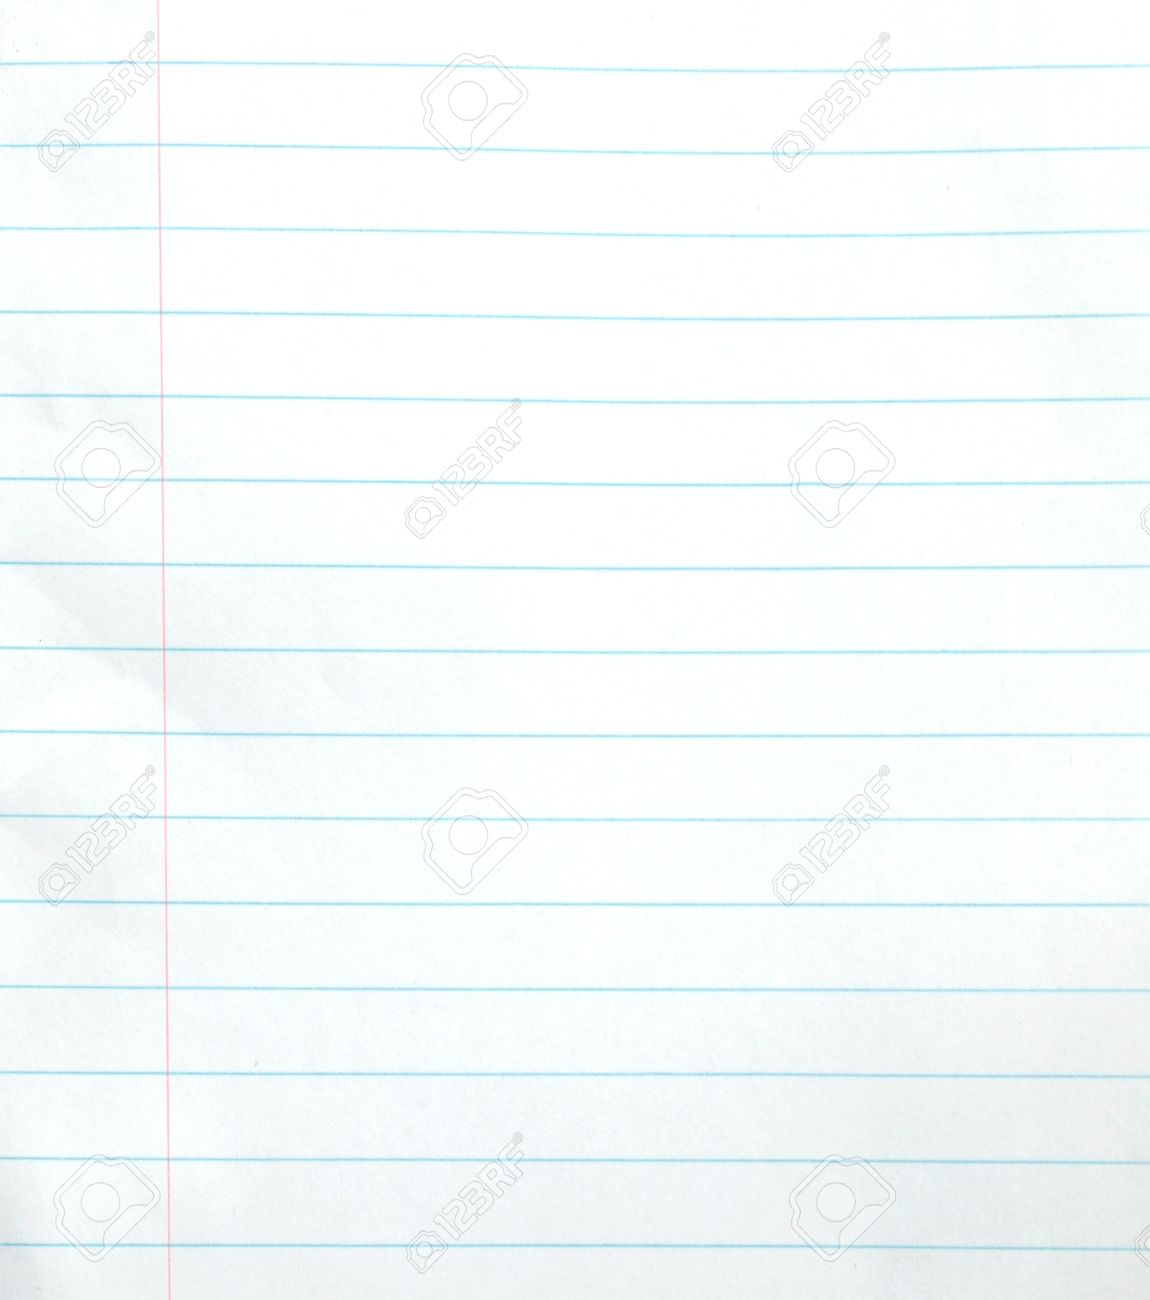 Blank Lined Notebook Paper Background Or Textured Photo – Paper Lined